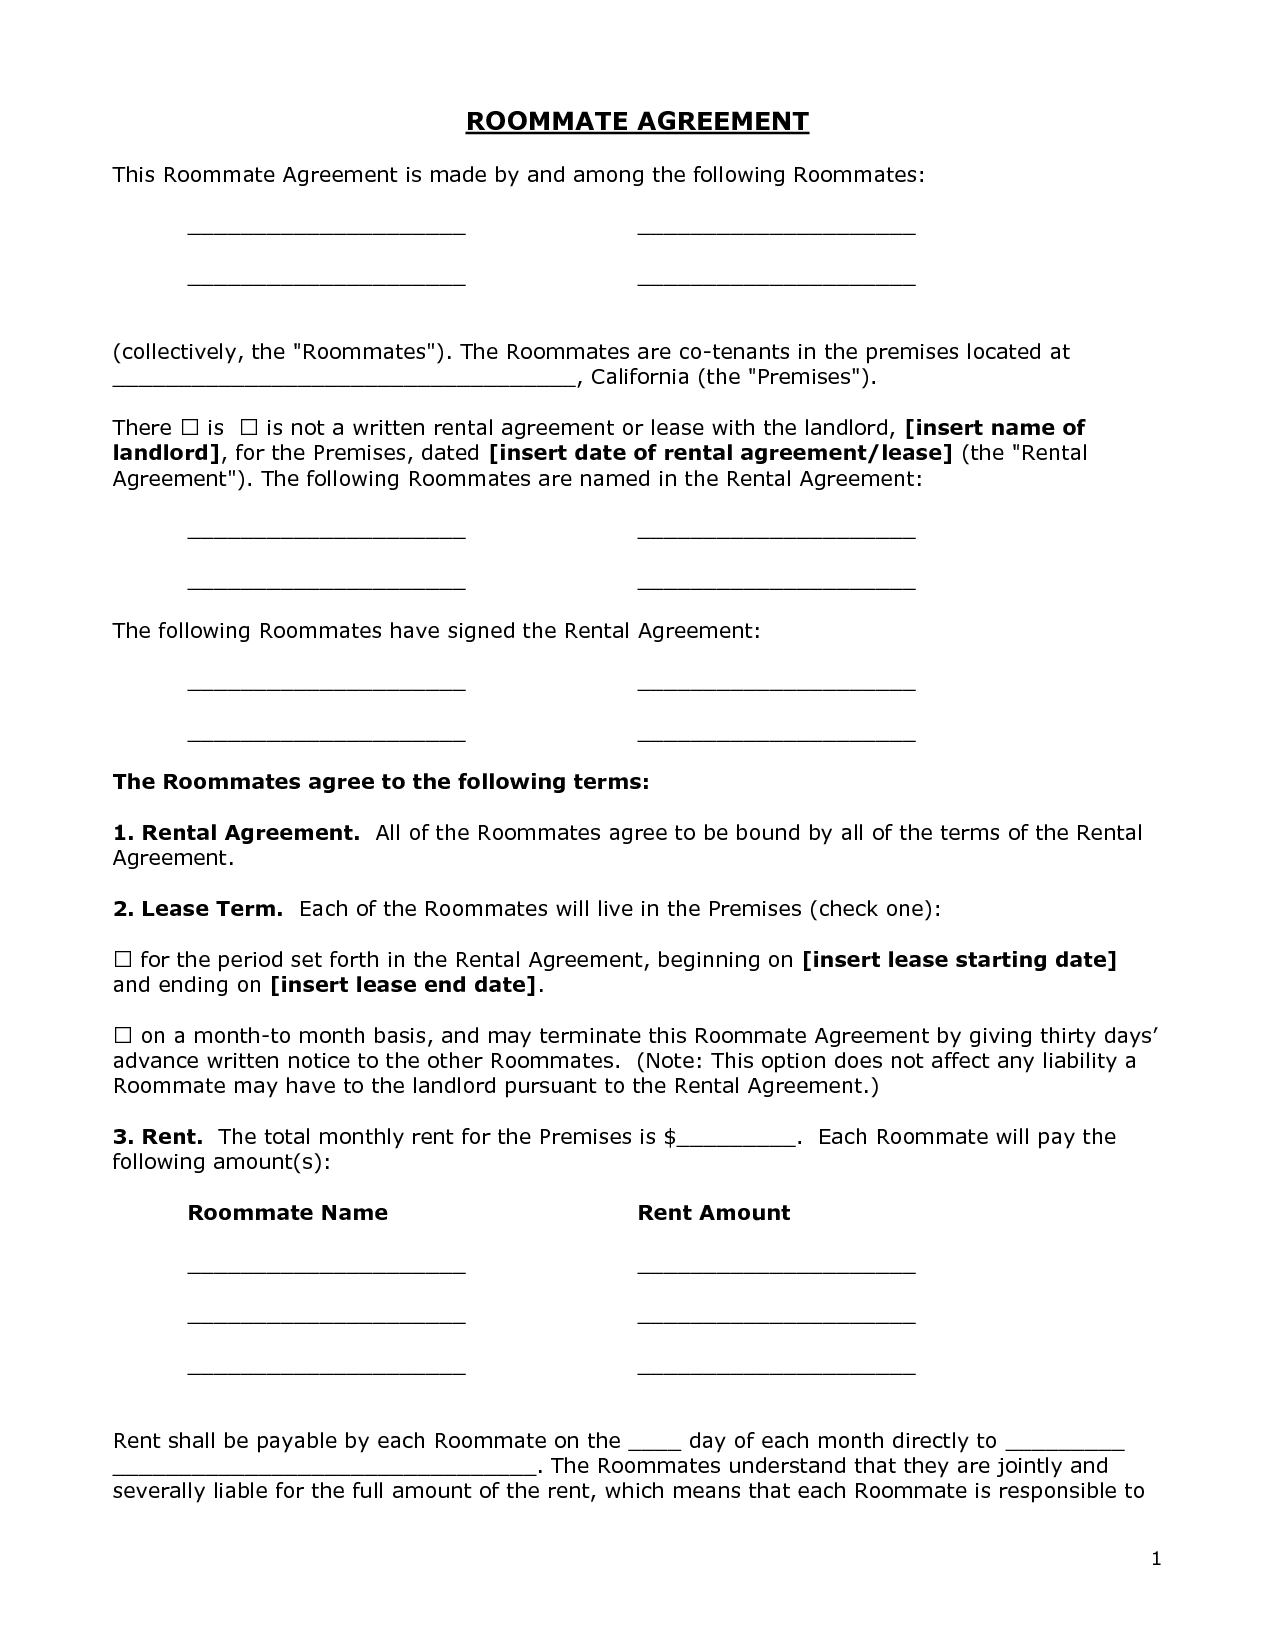 Renters agreement form doc by bgf31721 roommate agreement renters agreement form doc by bgf31721 roommate agreement template free platinumwayz